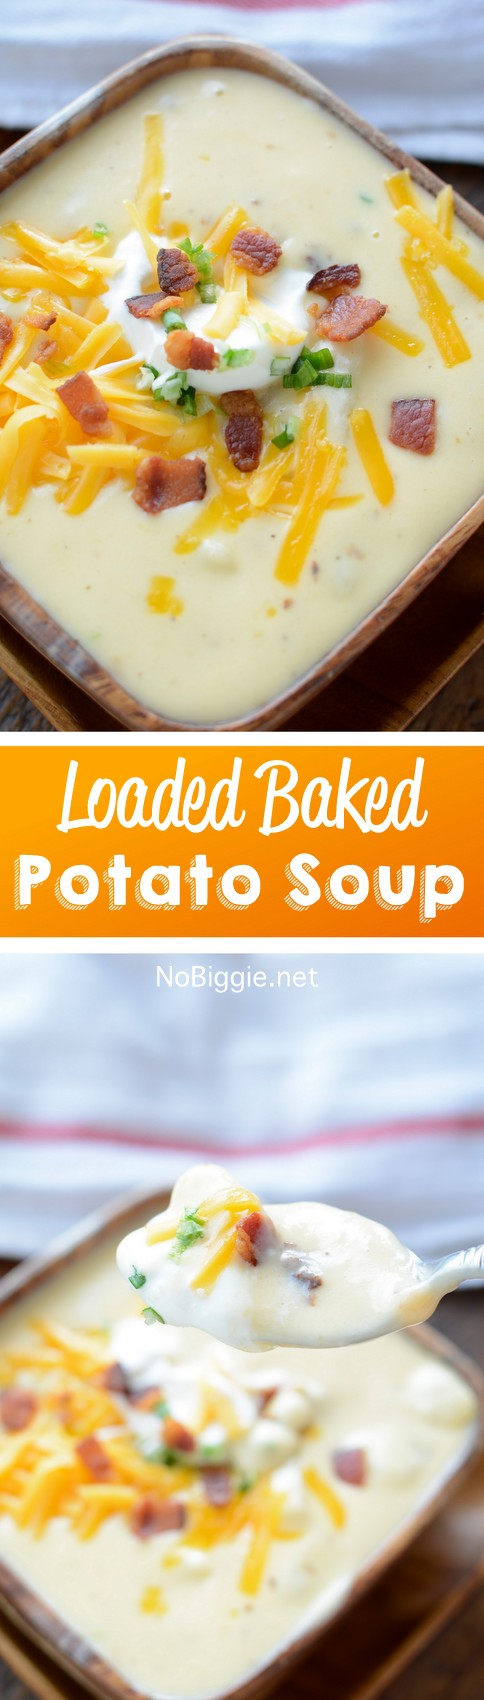 Everything you loved about a loaded baked potato...in a soup! This recipe for loaded baked potato soup is so creamy and delicious! #soup #potatosoup #loadedbakedpotato #bakedpotato #souprecipes